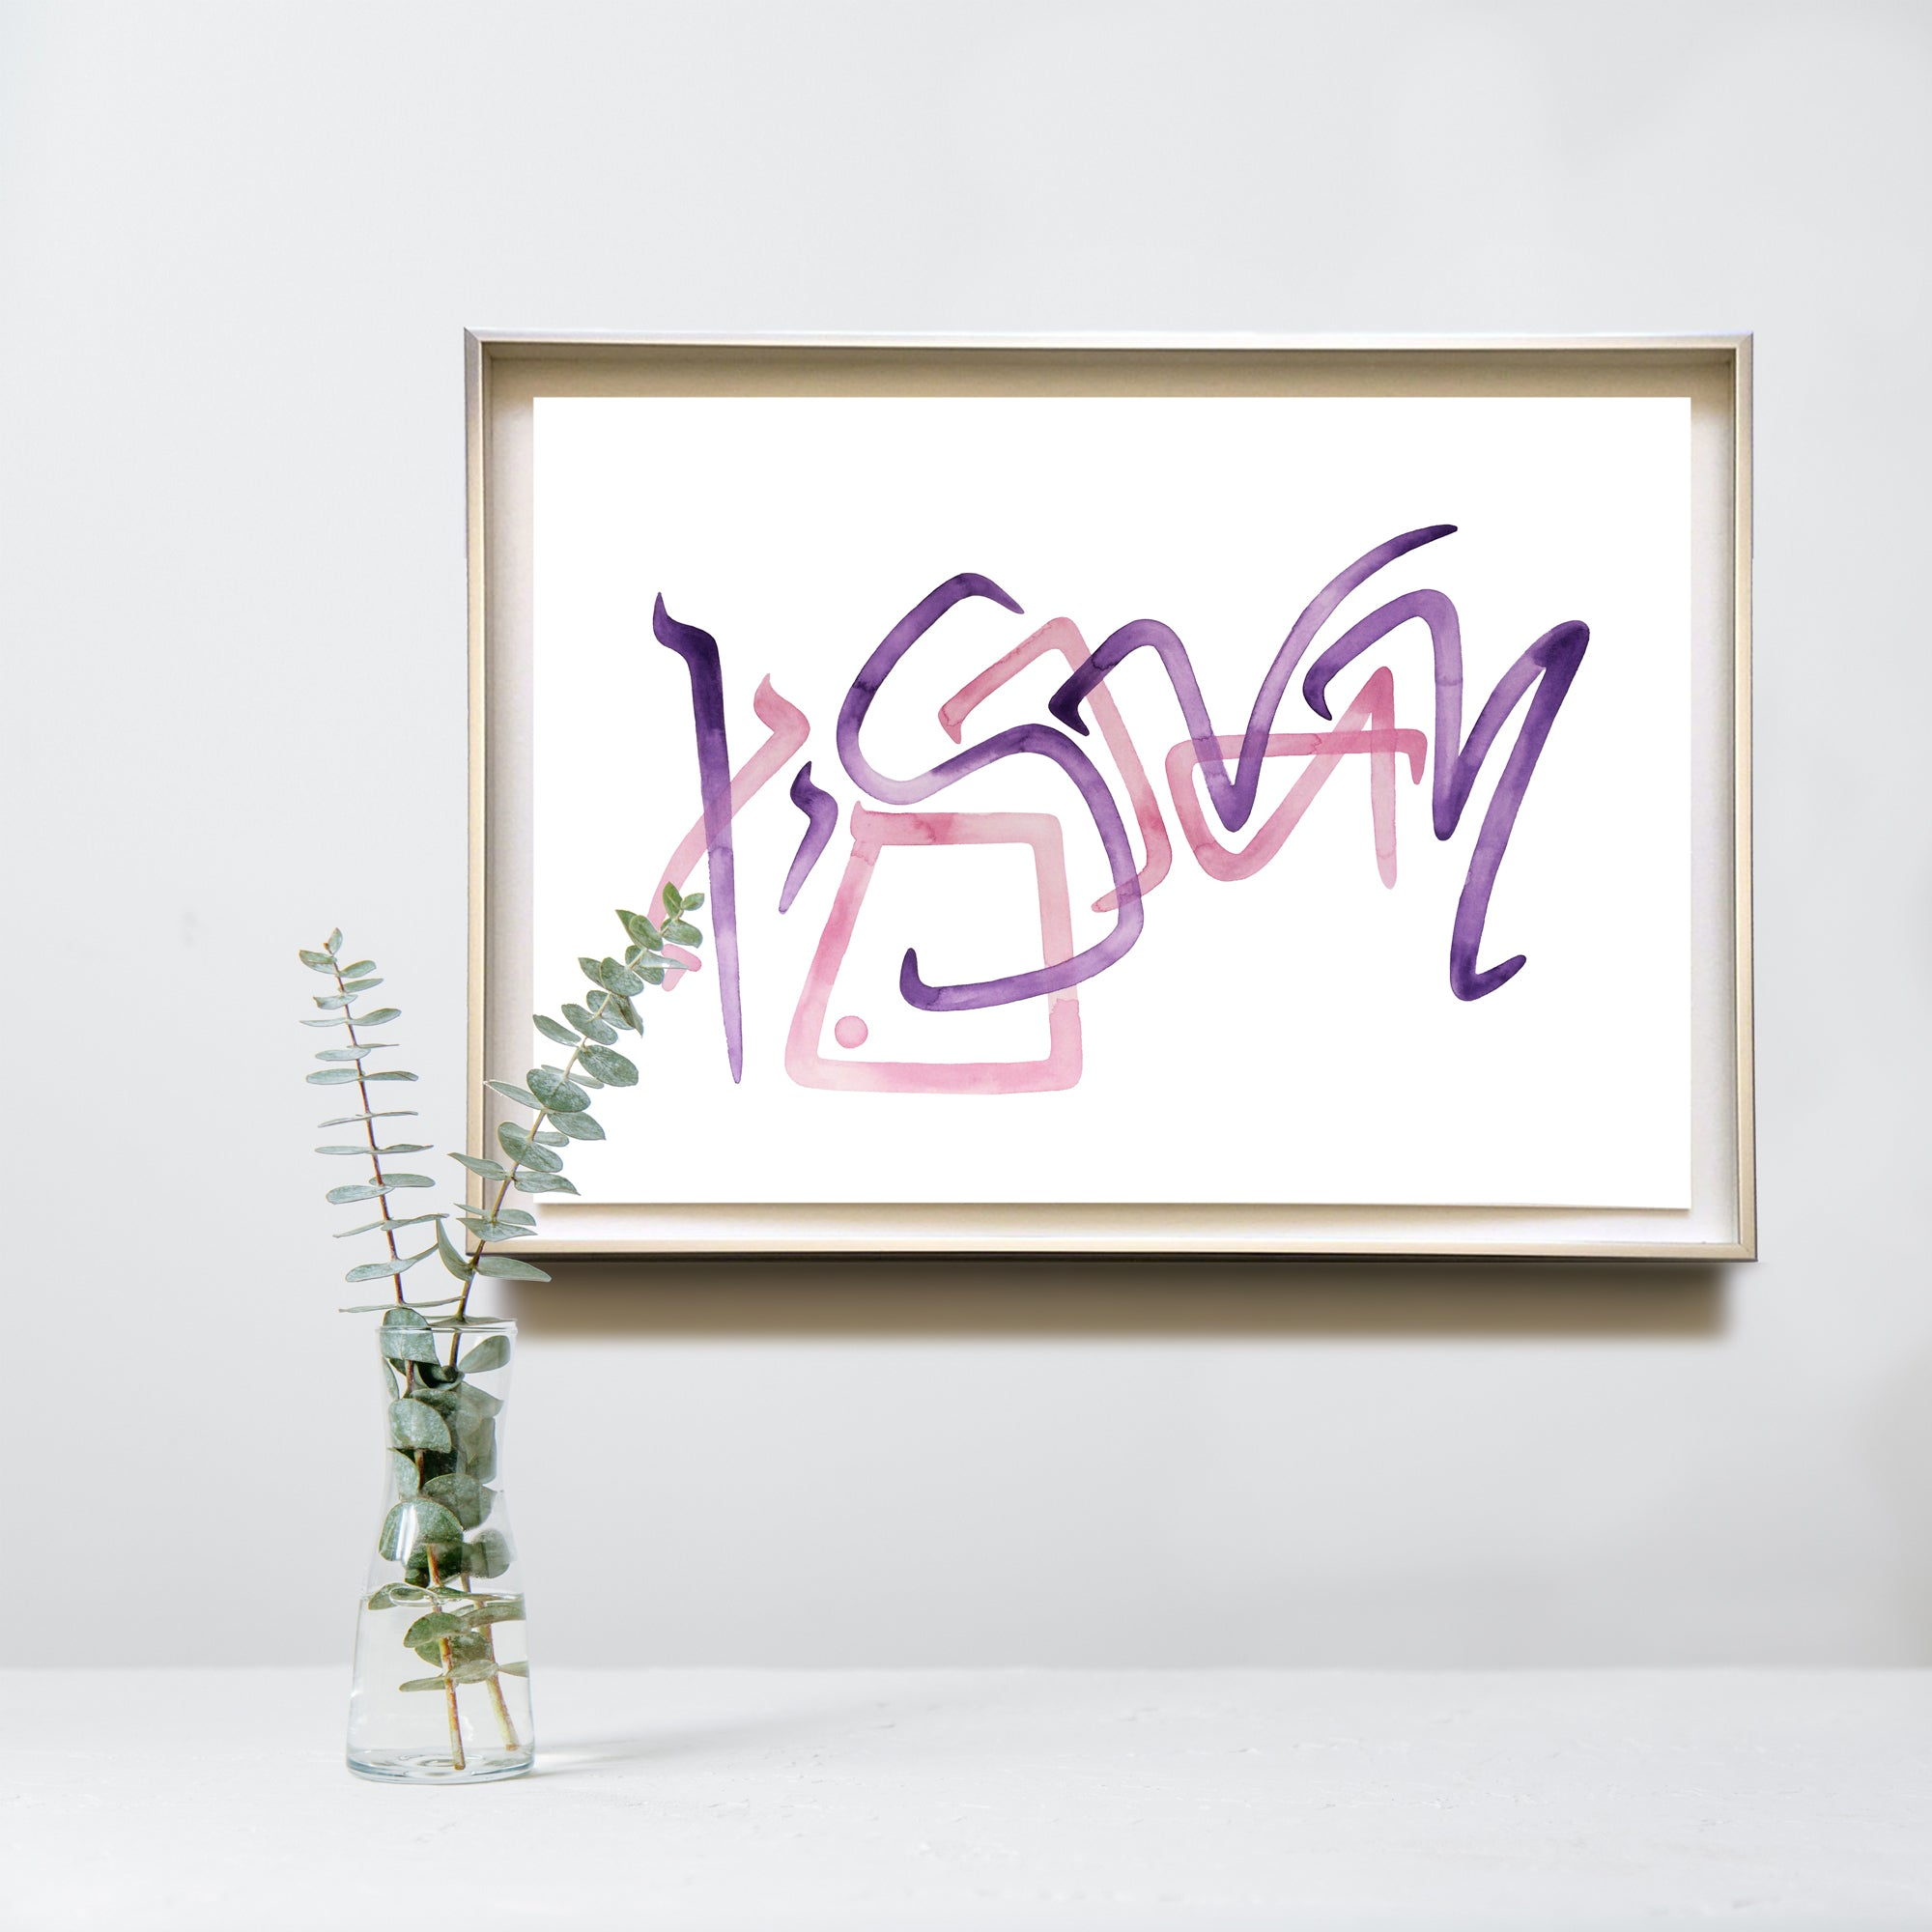 Name Blessing watercolor original painting, Calligraphy sign, Engagement bridal Gift, Wall art decor